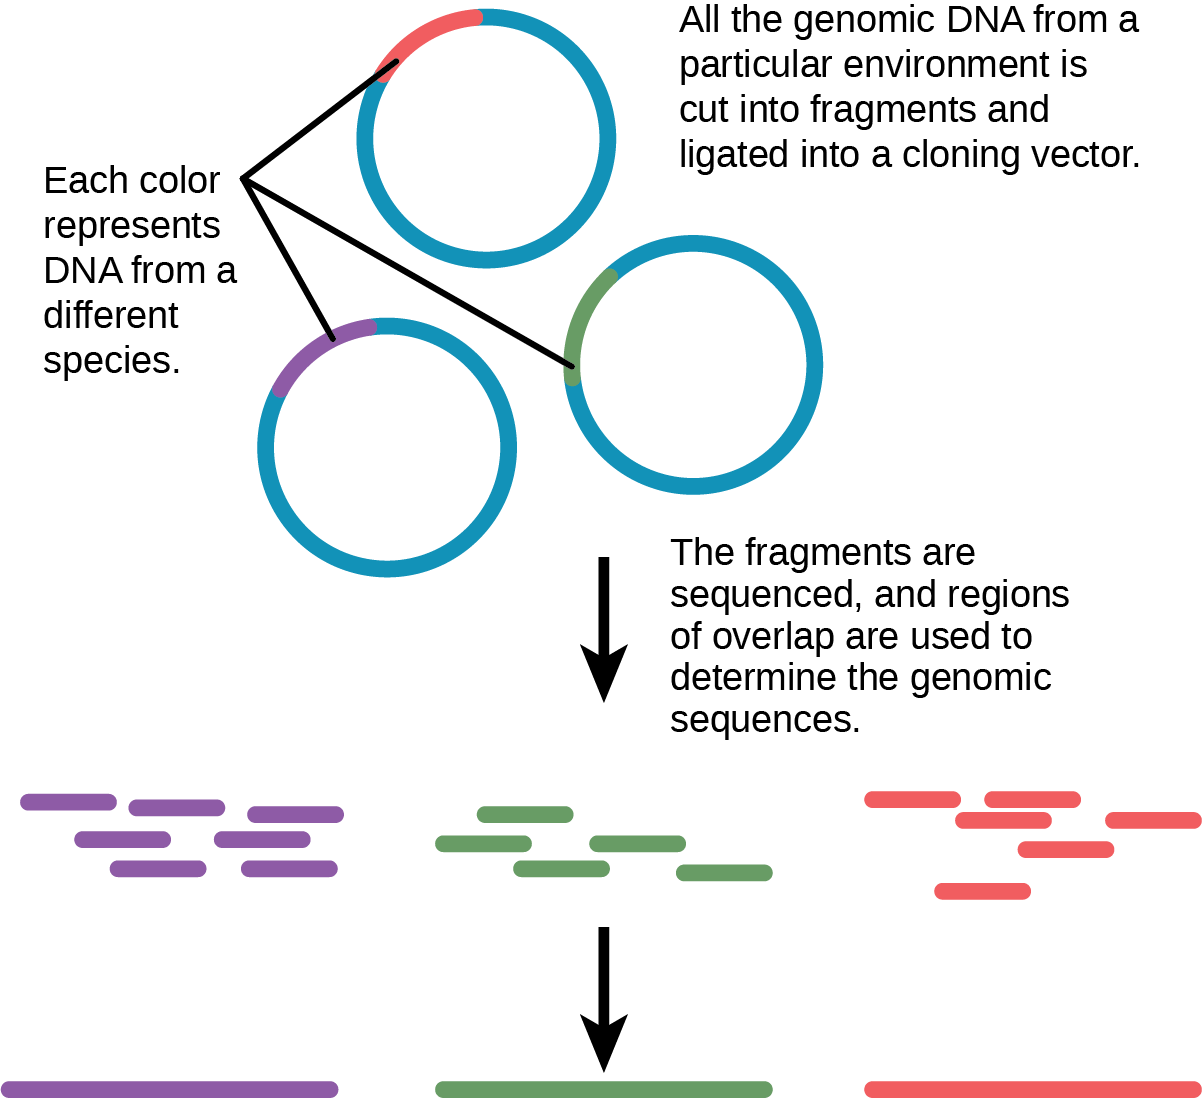 In metagenomics, all of the genomic DNA from a particular environment is cut into fragments and ligated into a cloning vector. The fragments, which may be from several different species, are sequenced. Regions of overlap indicate that two fragments came from the same species. Thus, the genome of each species present can be determined.